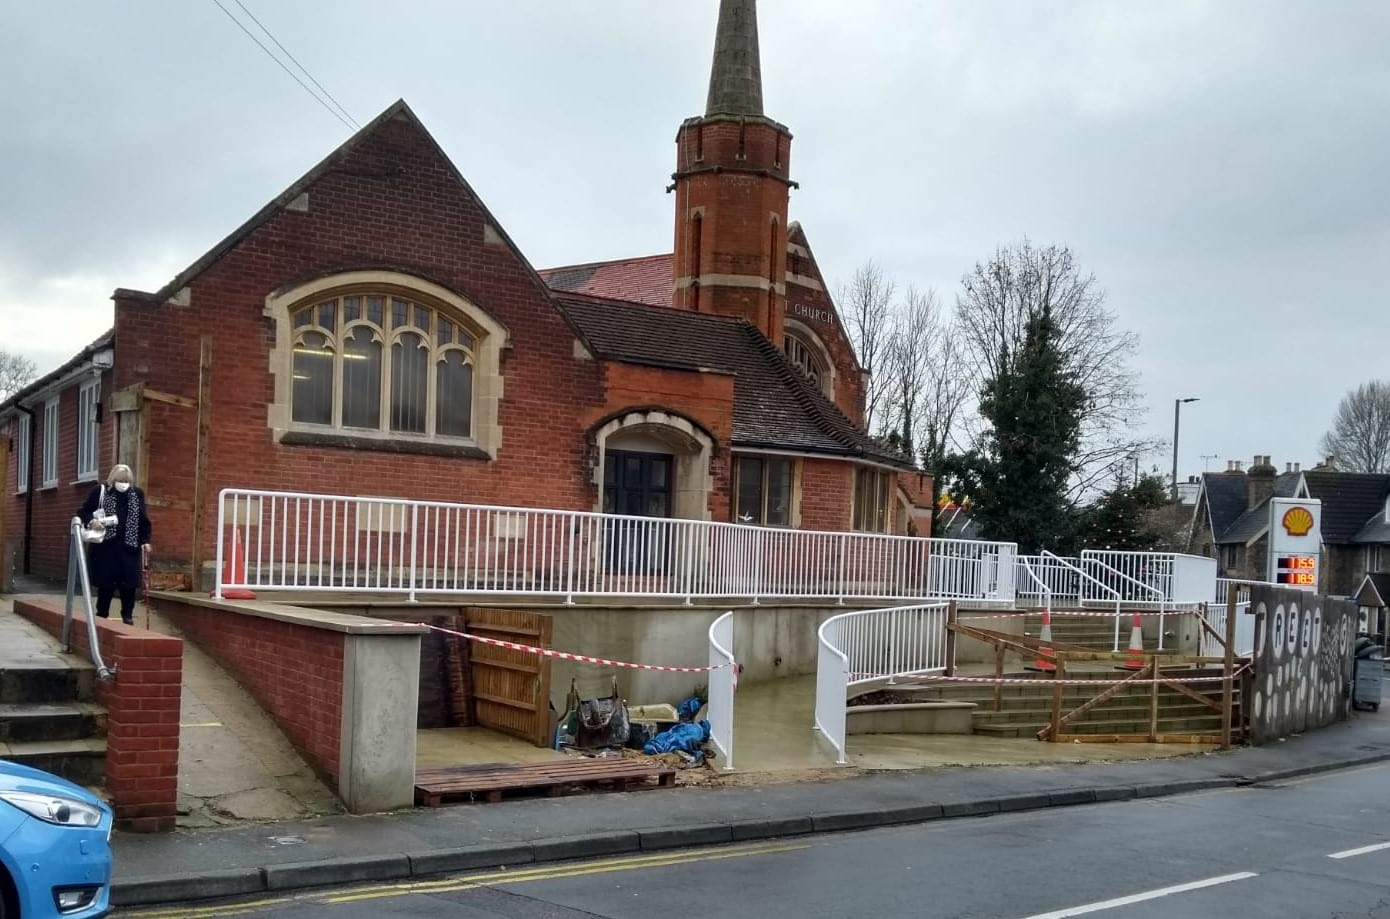 06.12.20 The hoarding is coming down at the front of the church.